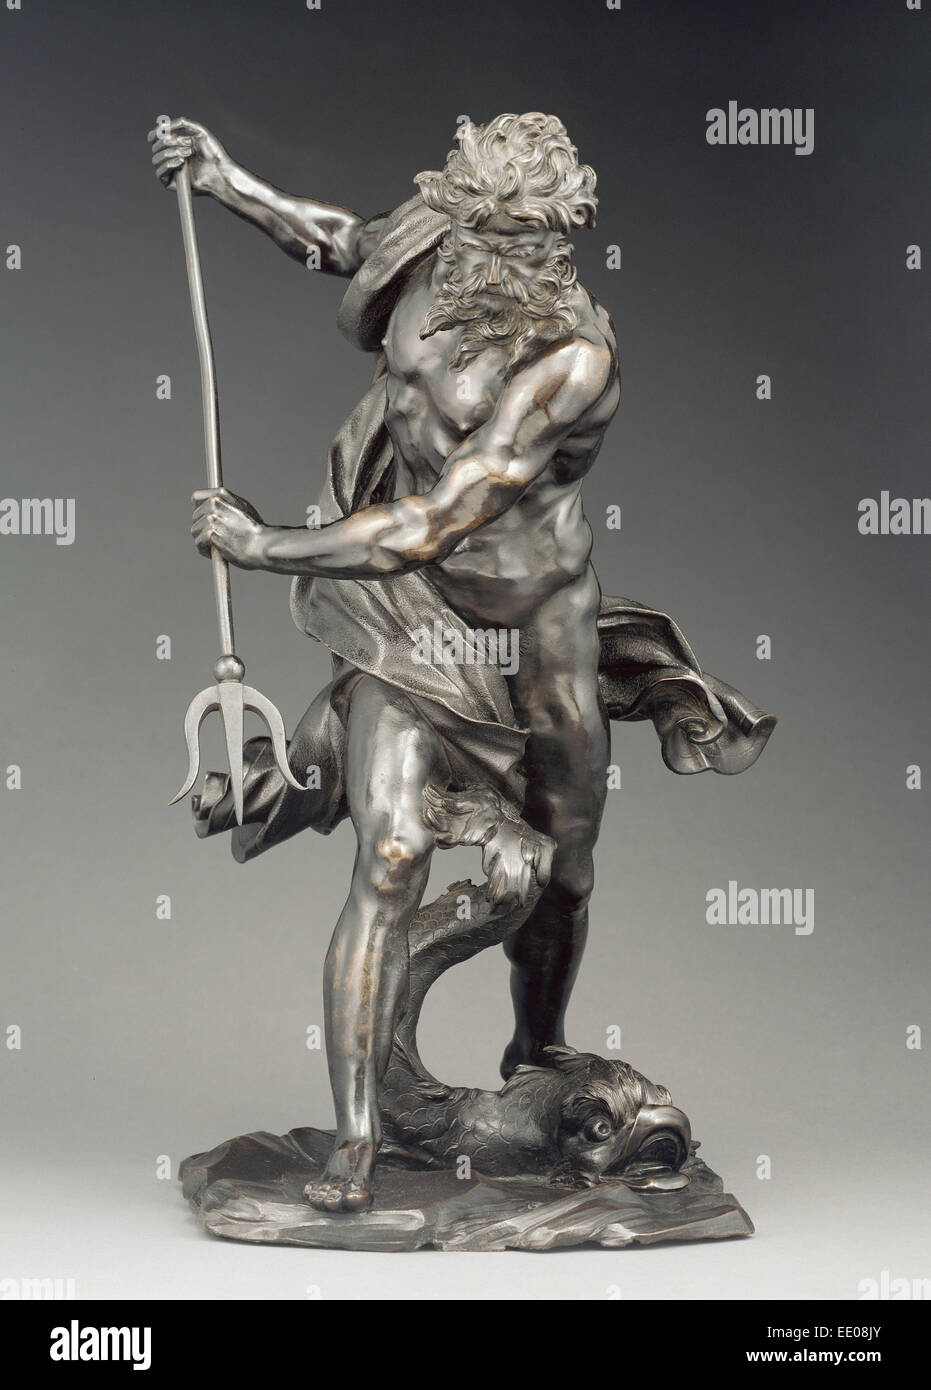 Neptune with Dolphin; After Gian Lorenzo Bernini, Italian, 1598 - 1680; probably 17th century (after 1623); Bronze - Stock Image